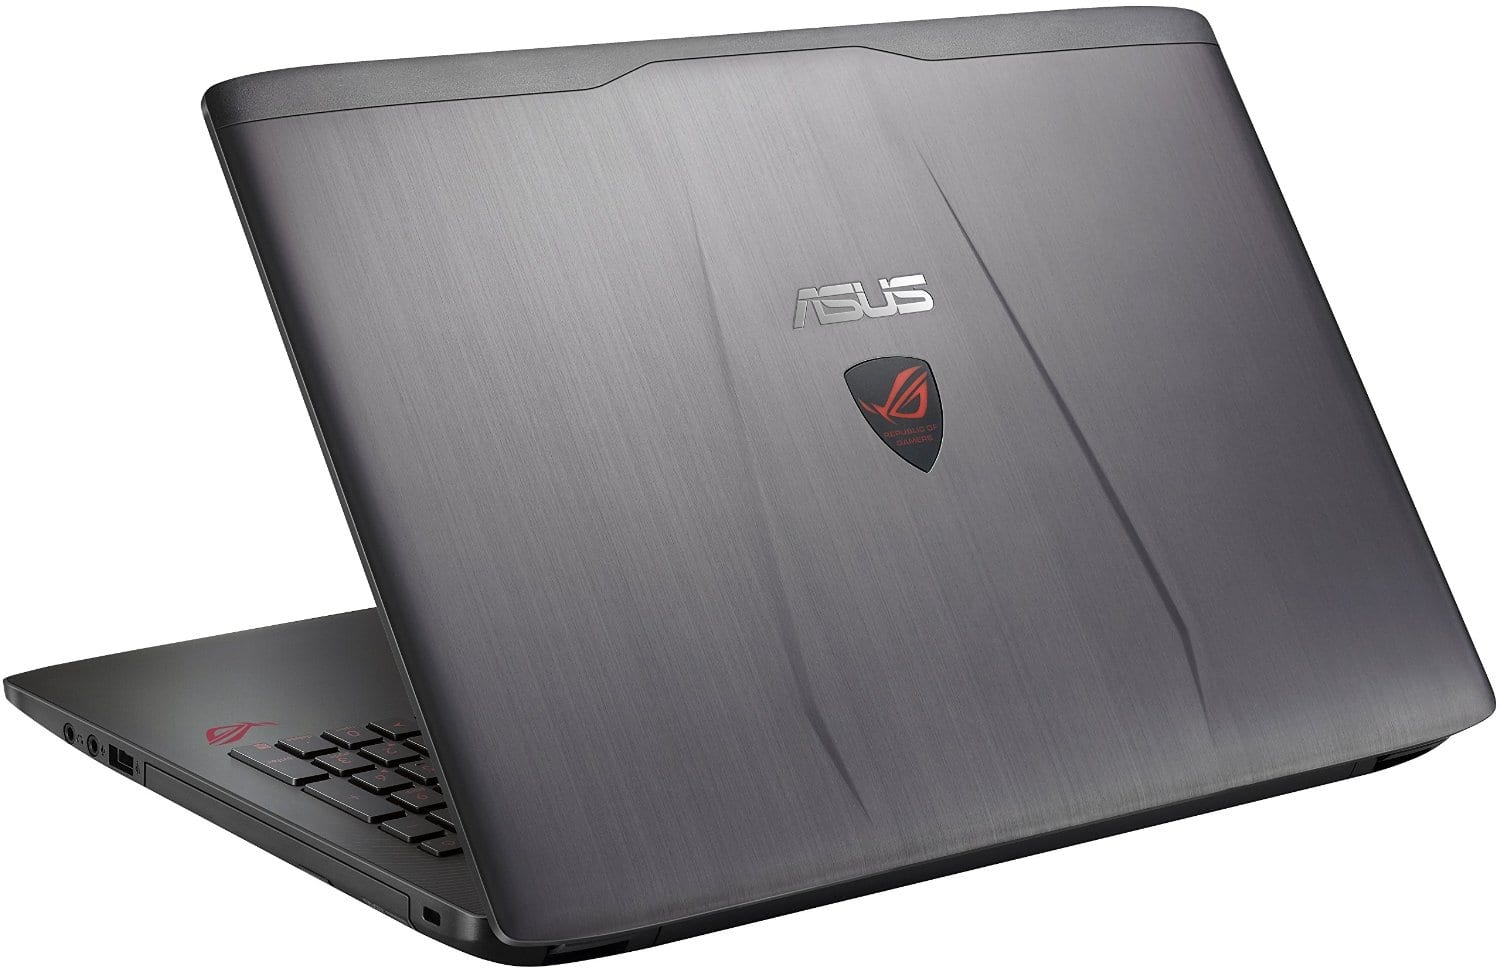 """ASUS LAPTOP ROG GL552VW-DH74 15-Inch """"Like New'.  $591.95 plus tax. OOS now."""